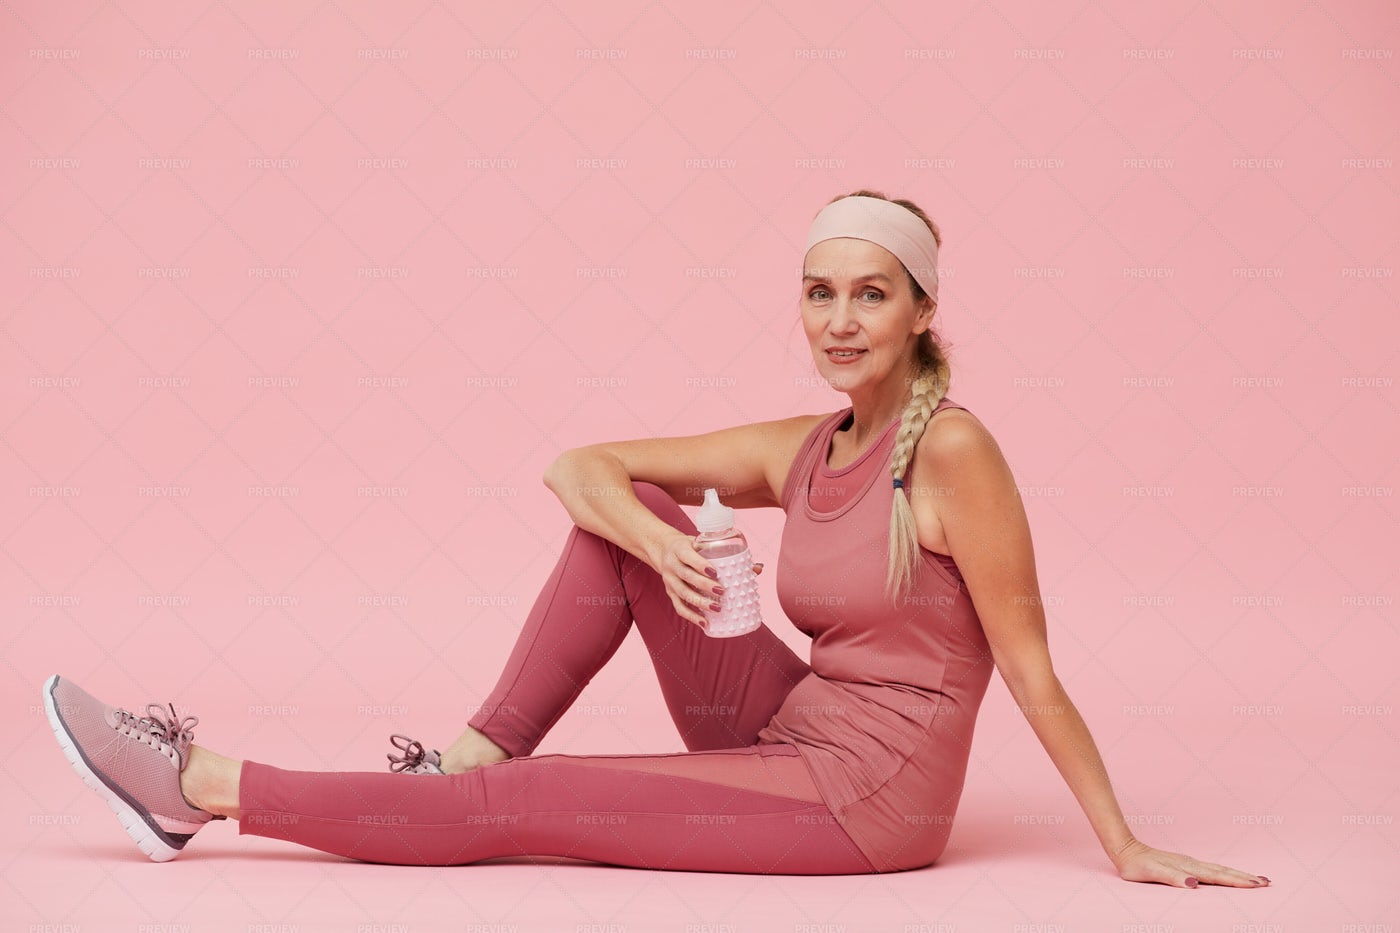 Mature Woman Wearing Sports Outfit: Stock Photos